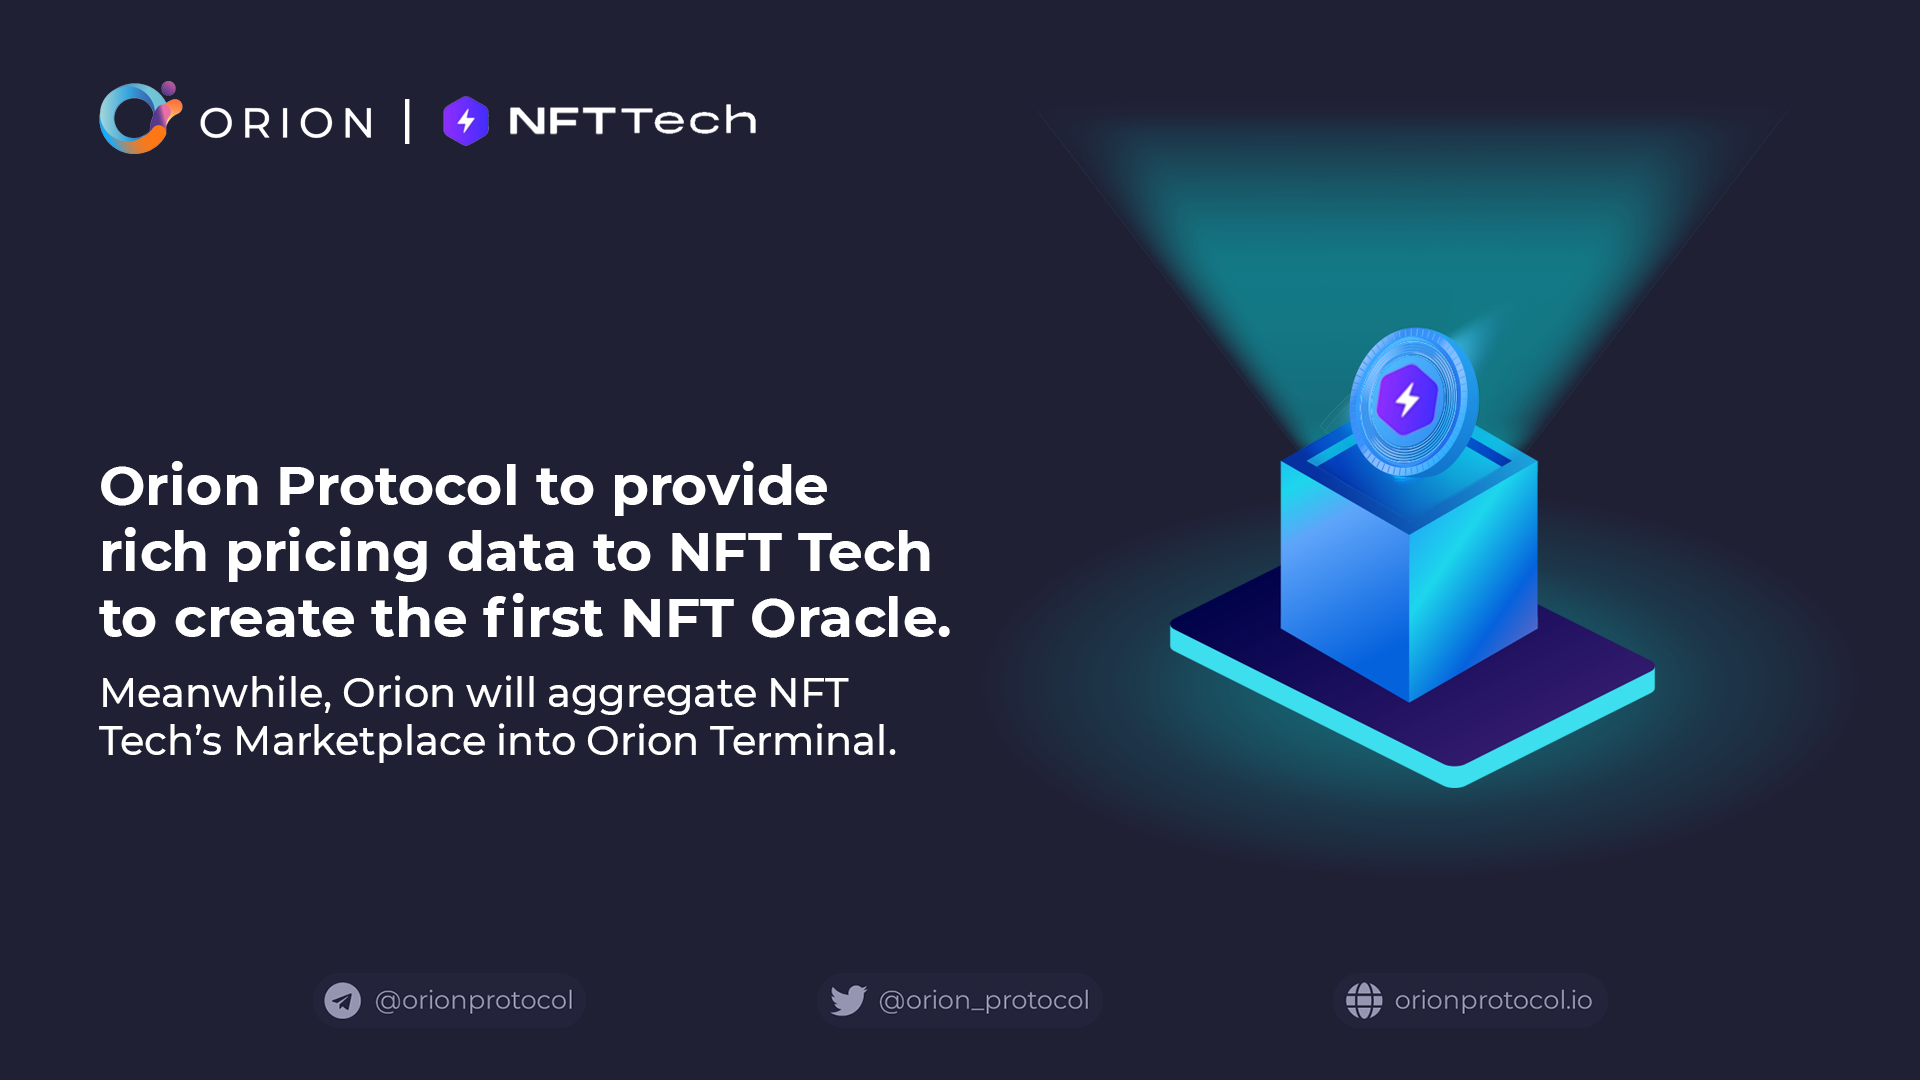 Orion partners with NFT Tech on the first NFT Oracle